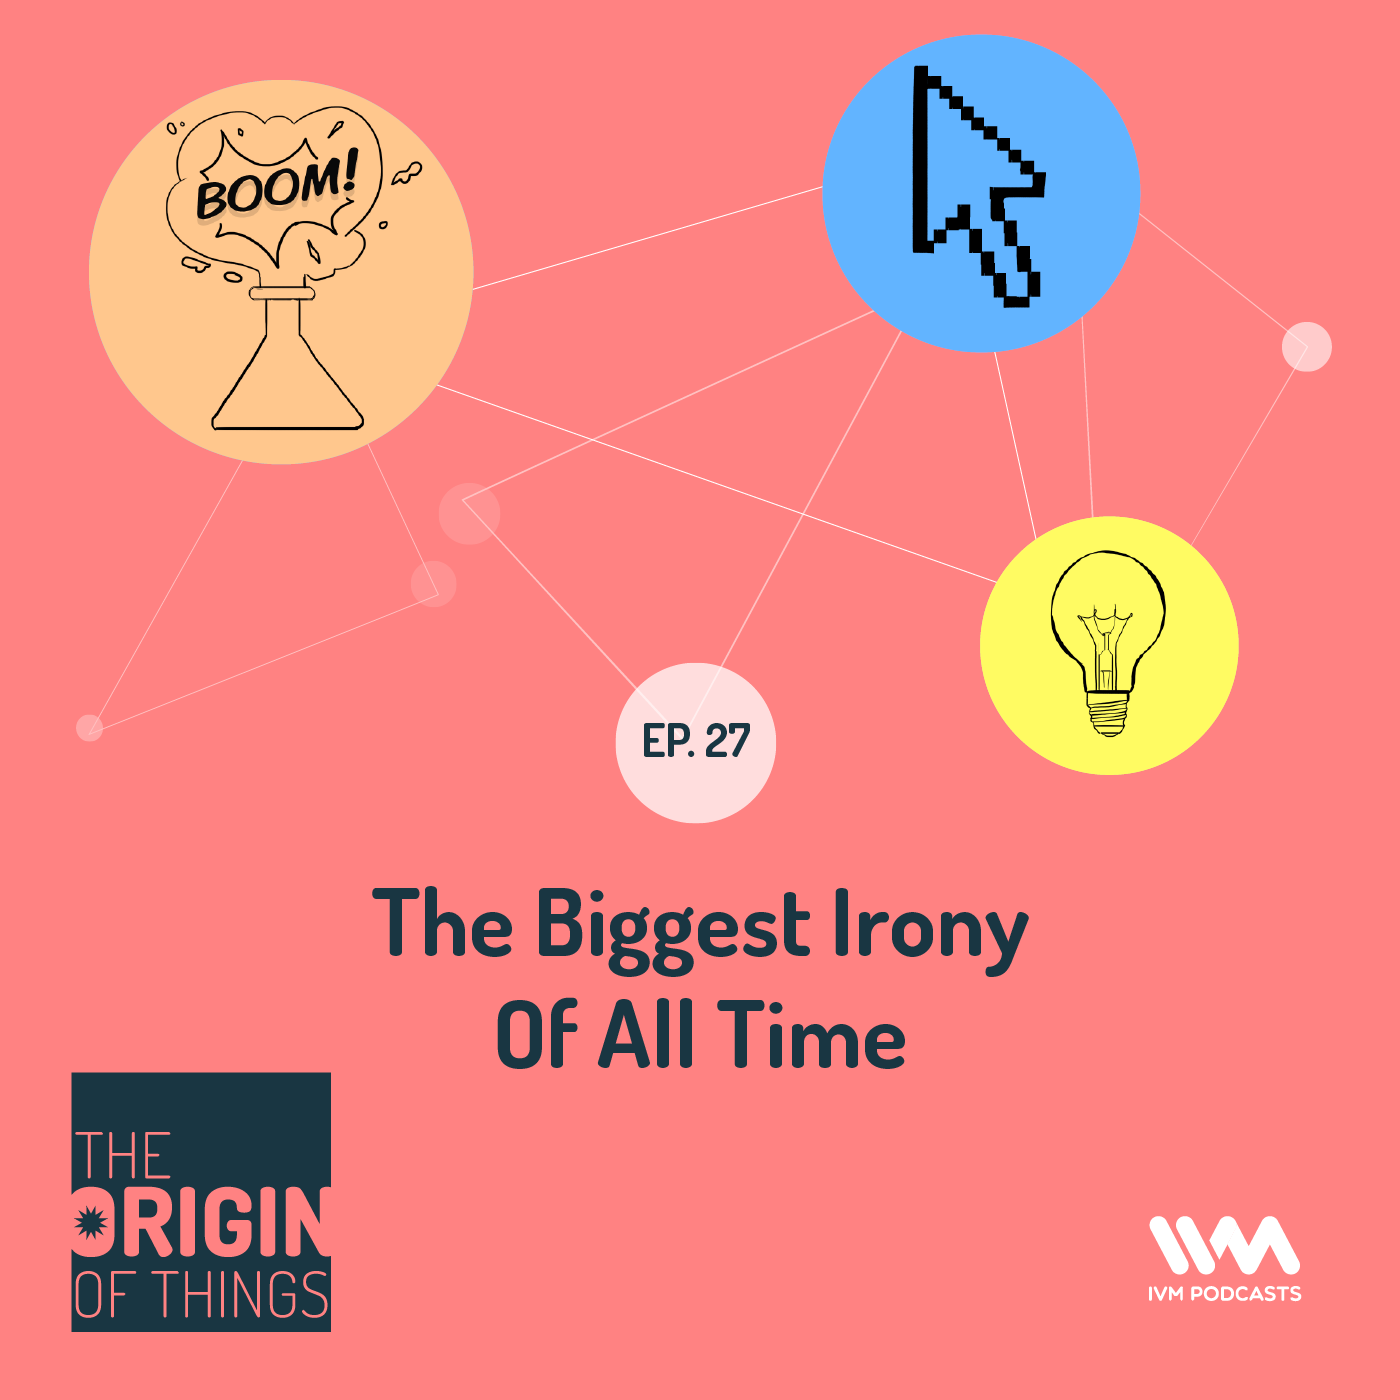 Ep. 27: The biggest irony of all time